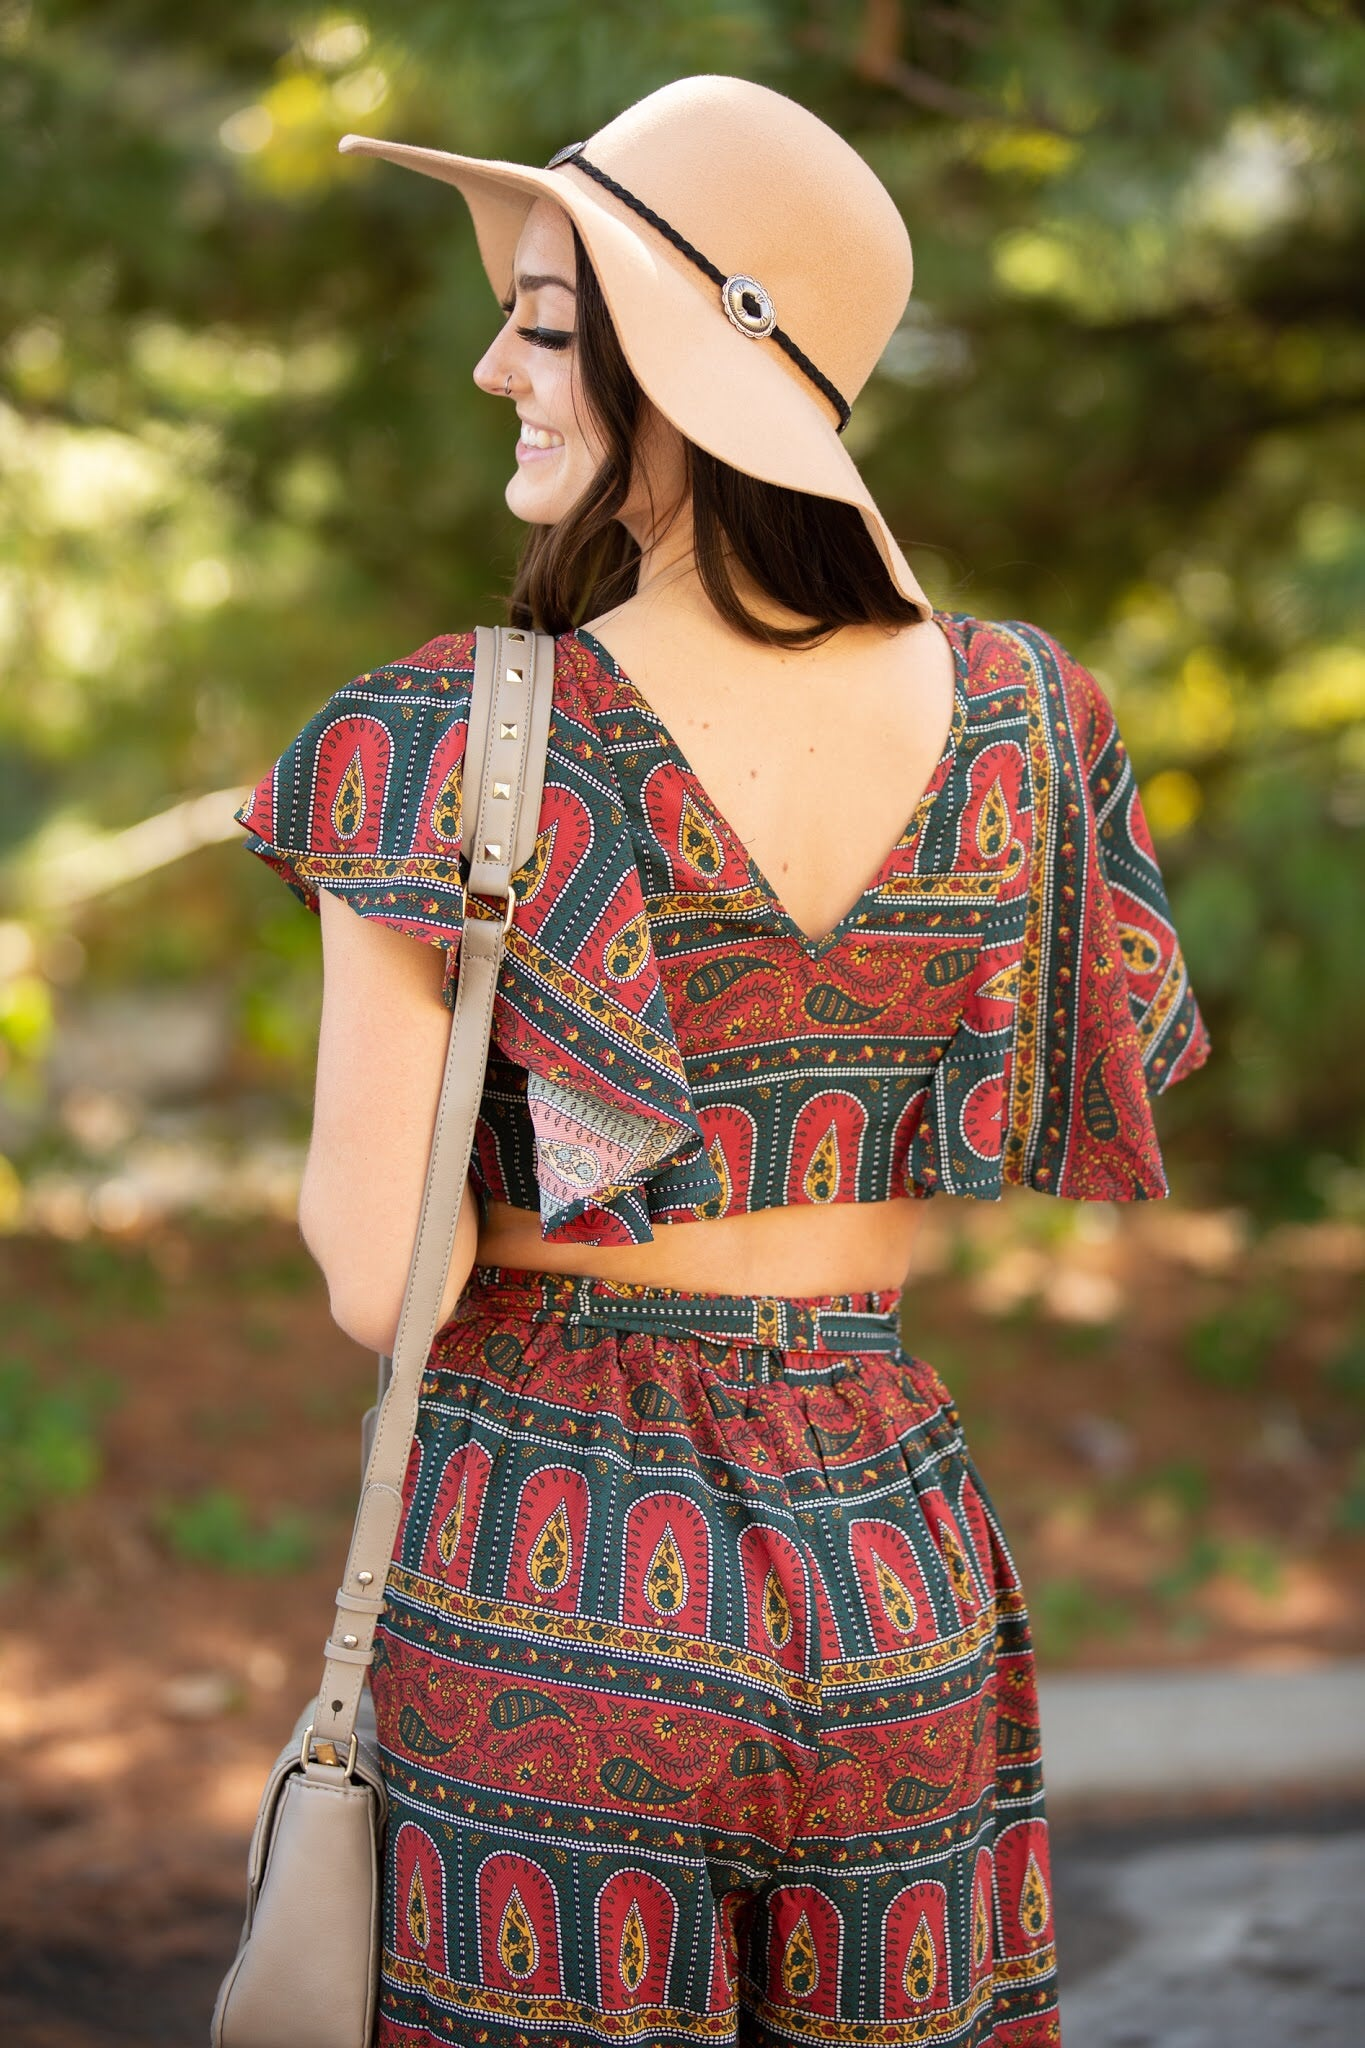 She Knows Floppy Hat - impromptu boutique